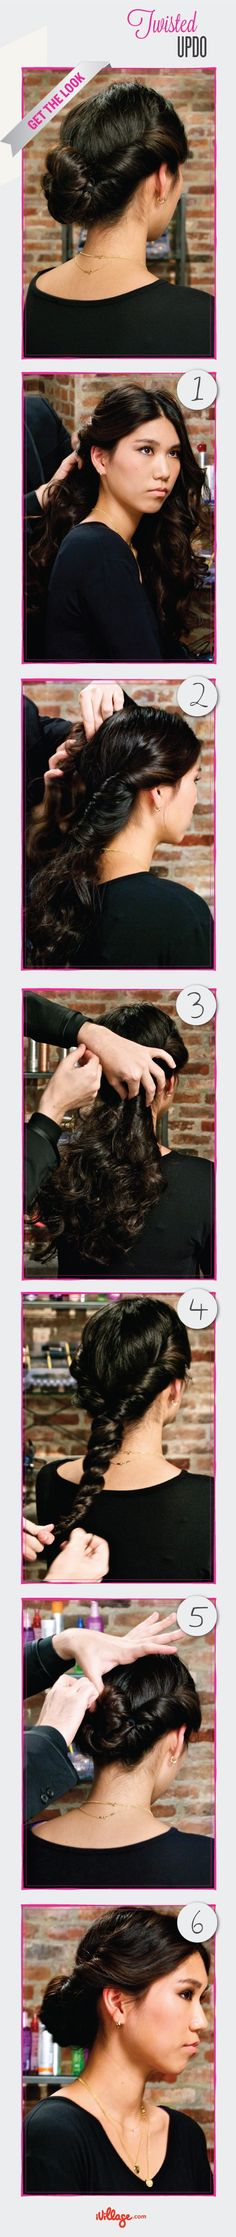 #DIY #Hairstyles: Easy Step-by-Step Hair Tutorials: Twisted #Updo - iVillage http://www.ivillage.com/diy-twisted-updo/5-h-478272